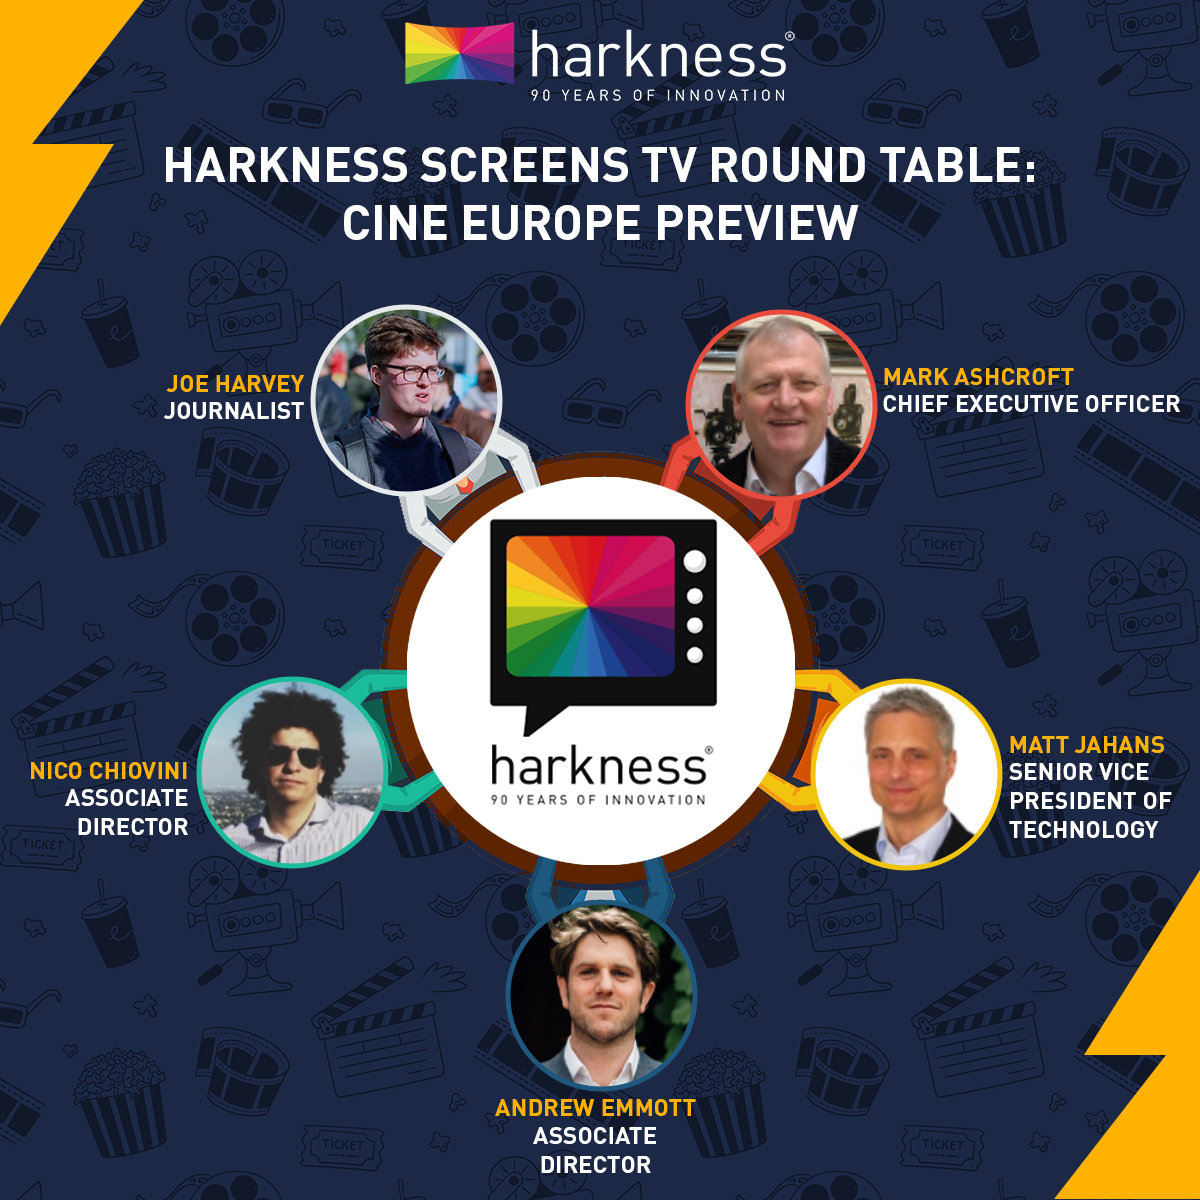 Harkness Screens TV Round Table: Cine Europe Preview